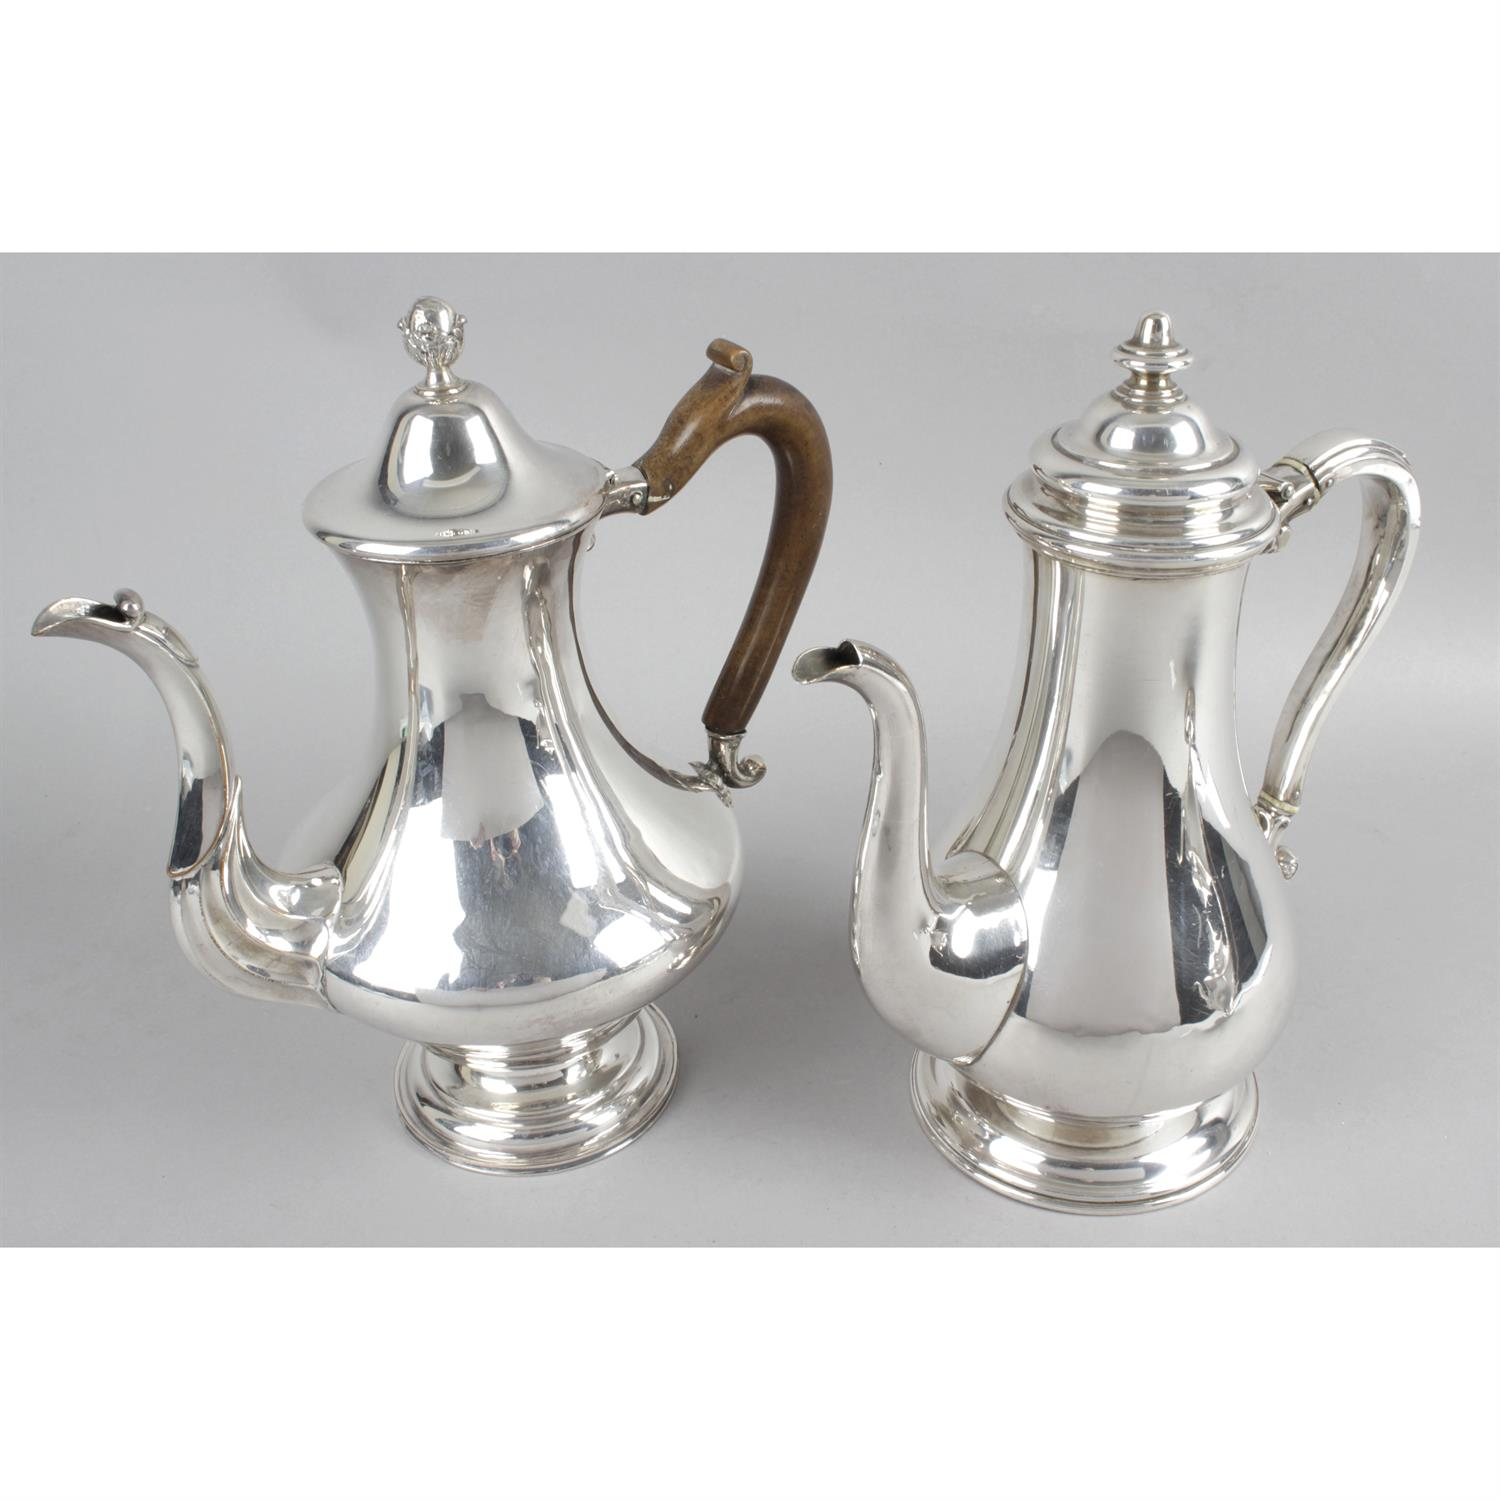 An Old Sheffield plate teapot of vase shape, together with two silver plated coffee pots. (3). - Image 2 of 3